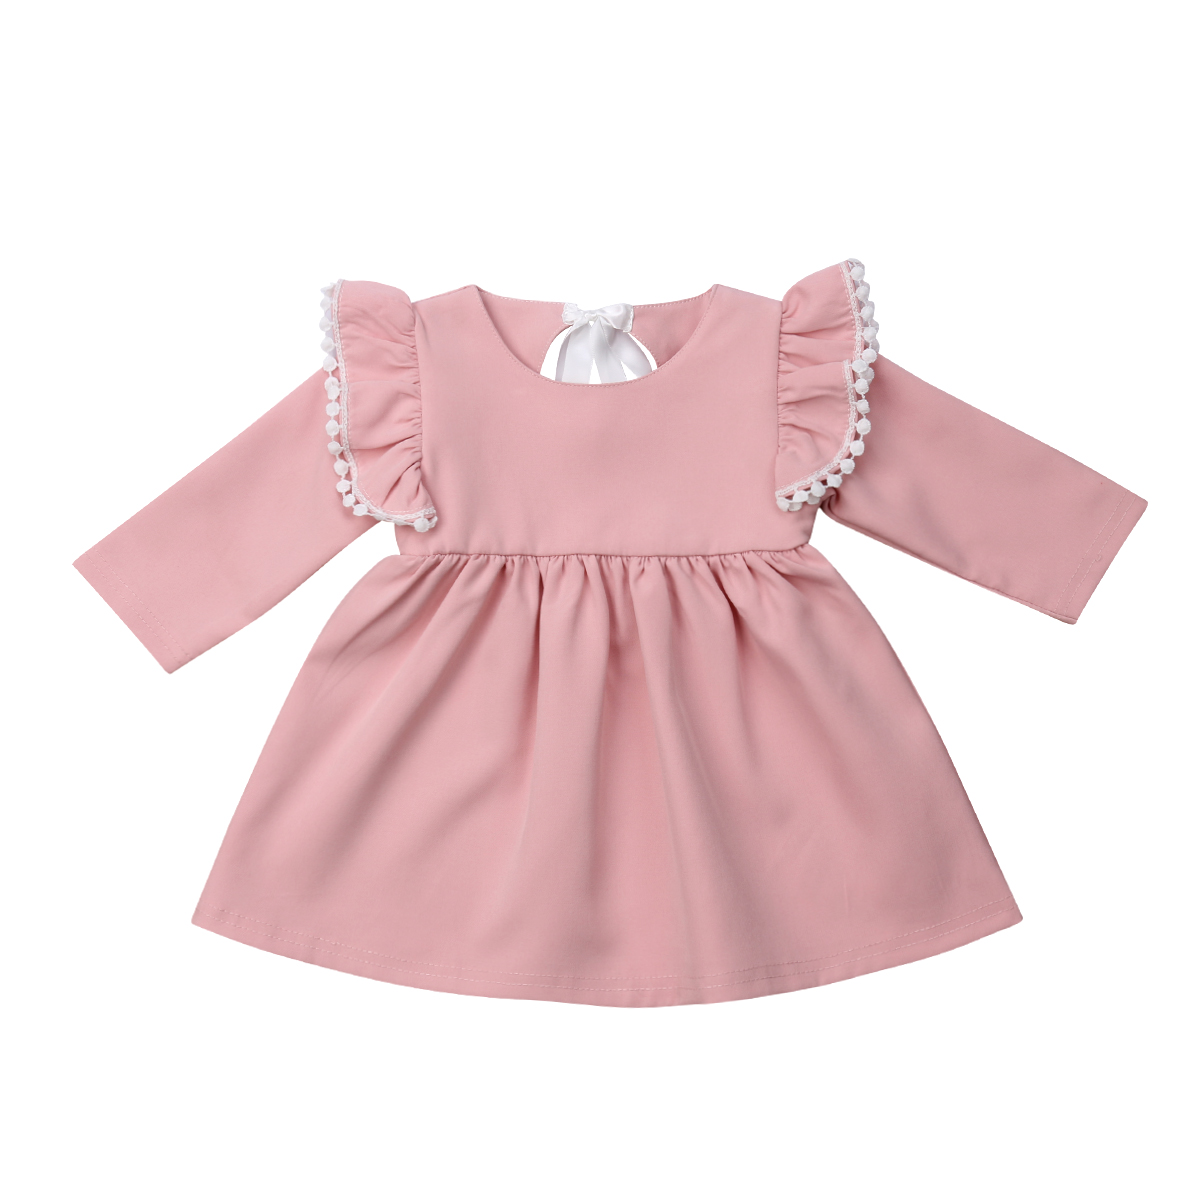 Baby Dressing Gown: 2018 New Autumn Cute Princess Infant Baby Girls Dress